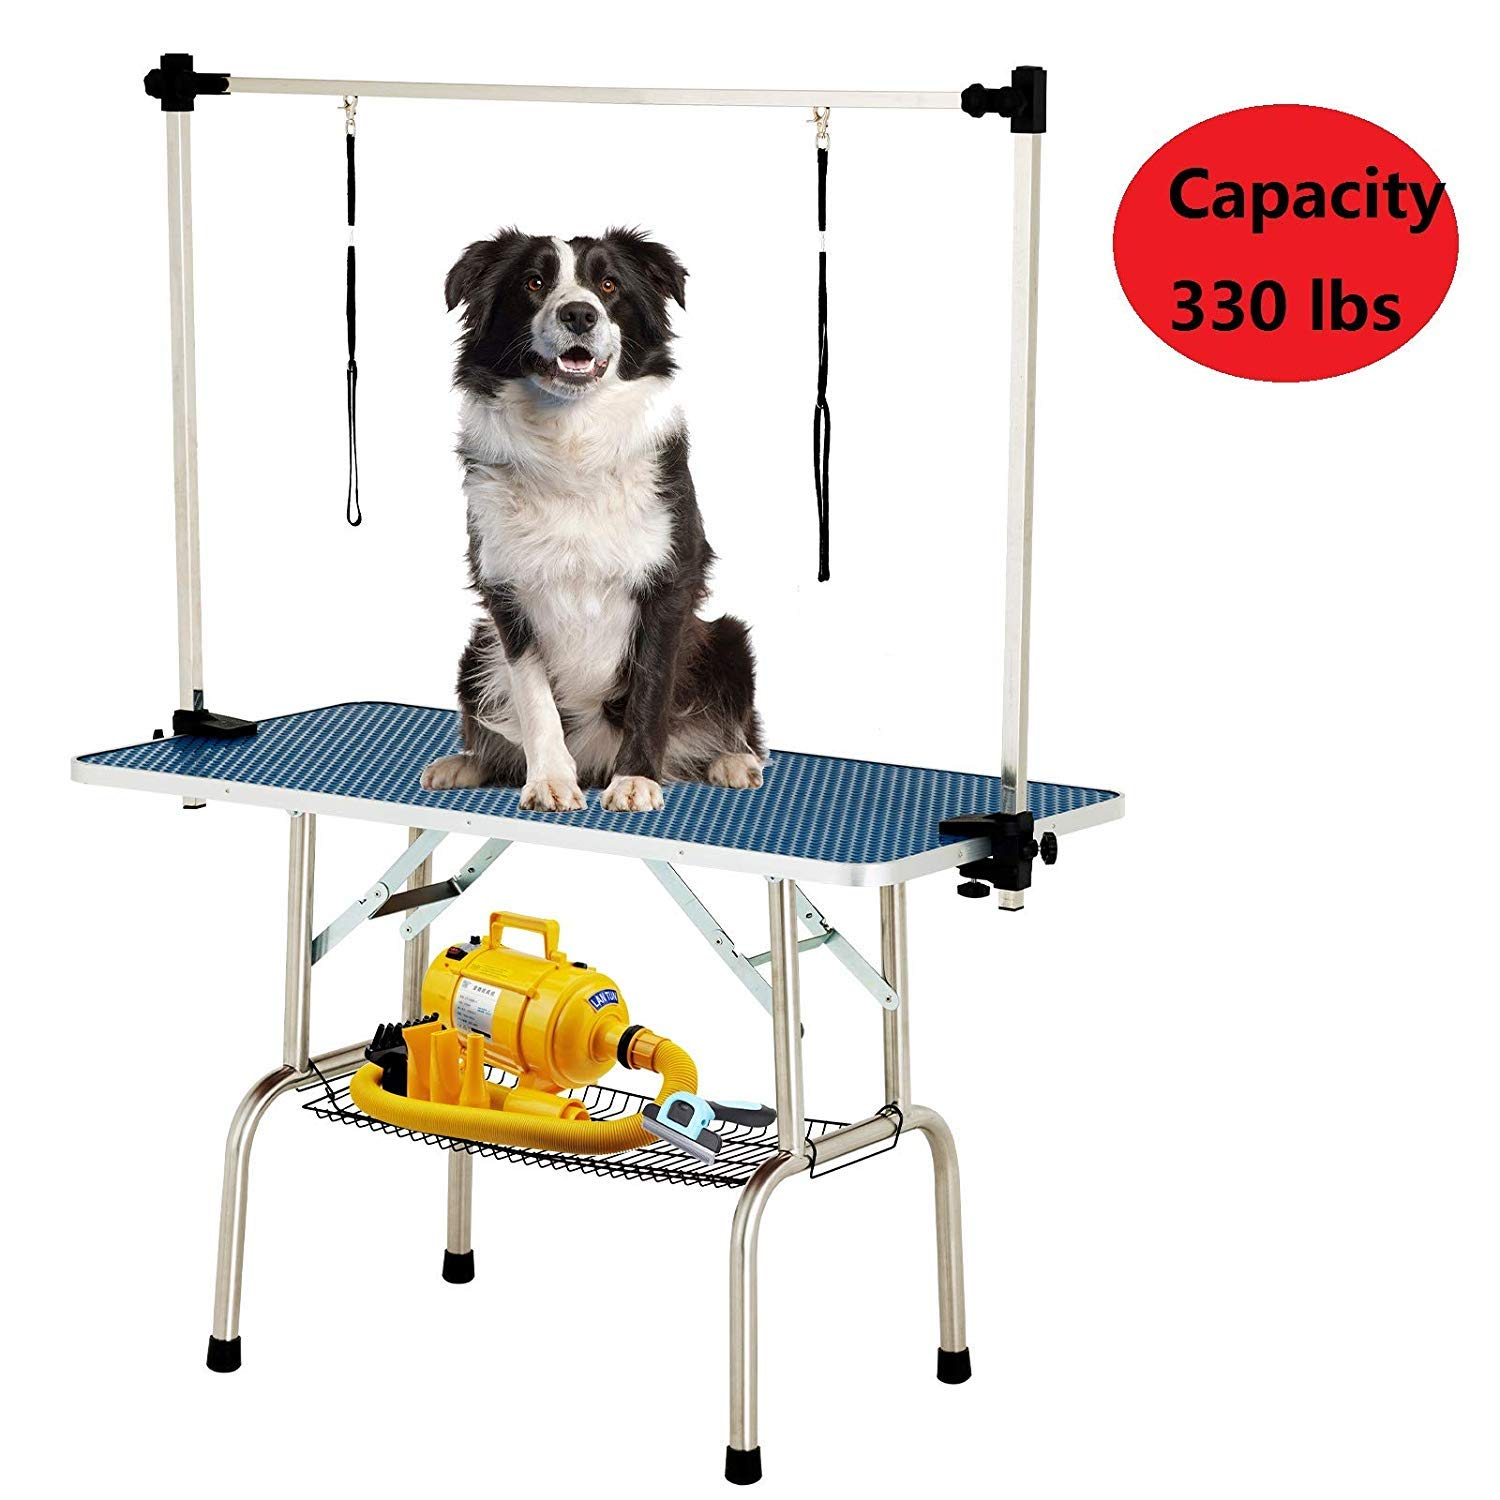 SUNCOO 48 Inch Large Portable Pet Dog Grooming Table Upgraded Professional Foldable Drying Trimming Table, Heavy Duty Stainless Steel Frame, Adjustable Arm/Noose/Mesh Tray, 330lbs Maximum Capacity by SUNCOO